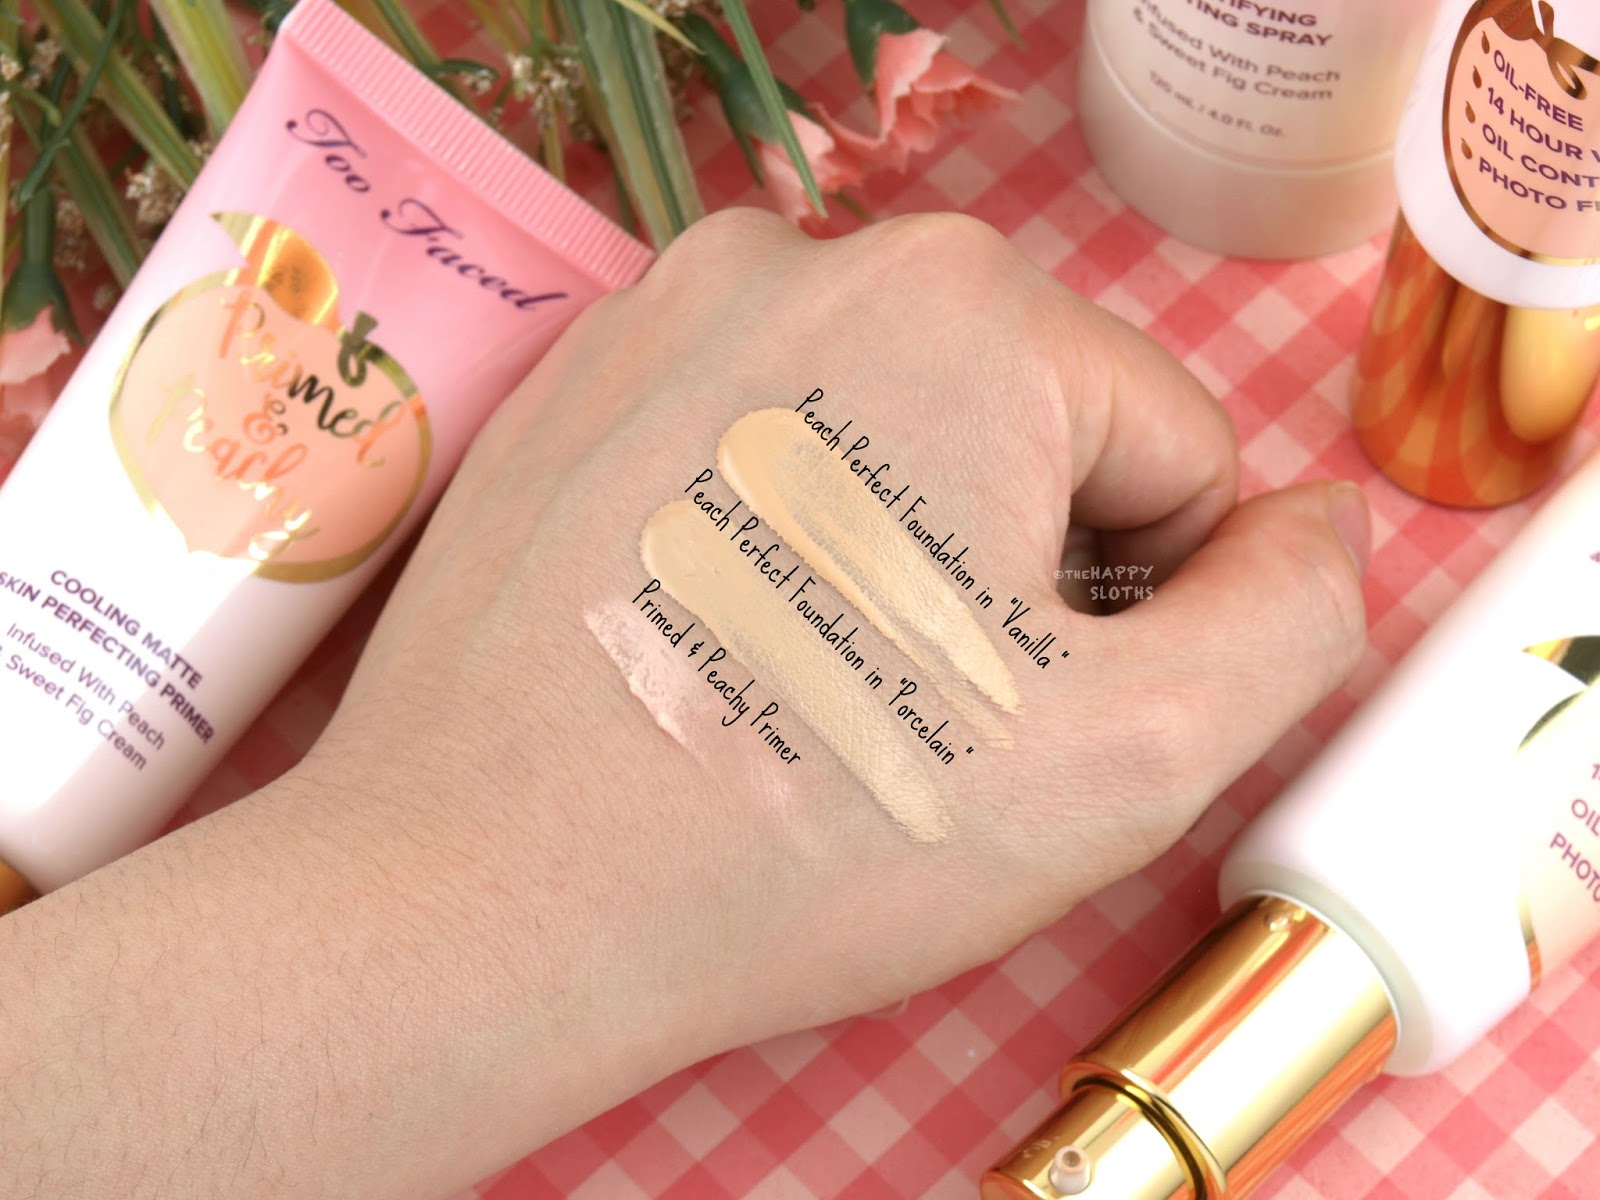 Too Faced Peaches & Cream Collection   Primed & Peachy Primer & Peach Perfect Comfort Matte Foundation: Review and Swatches